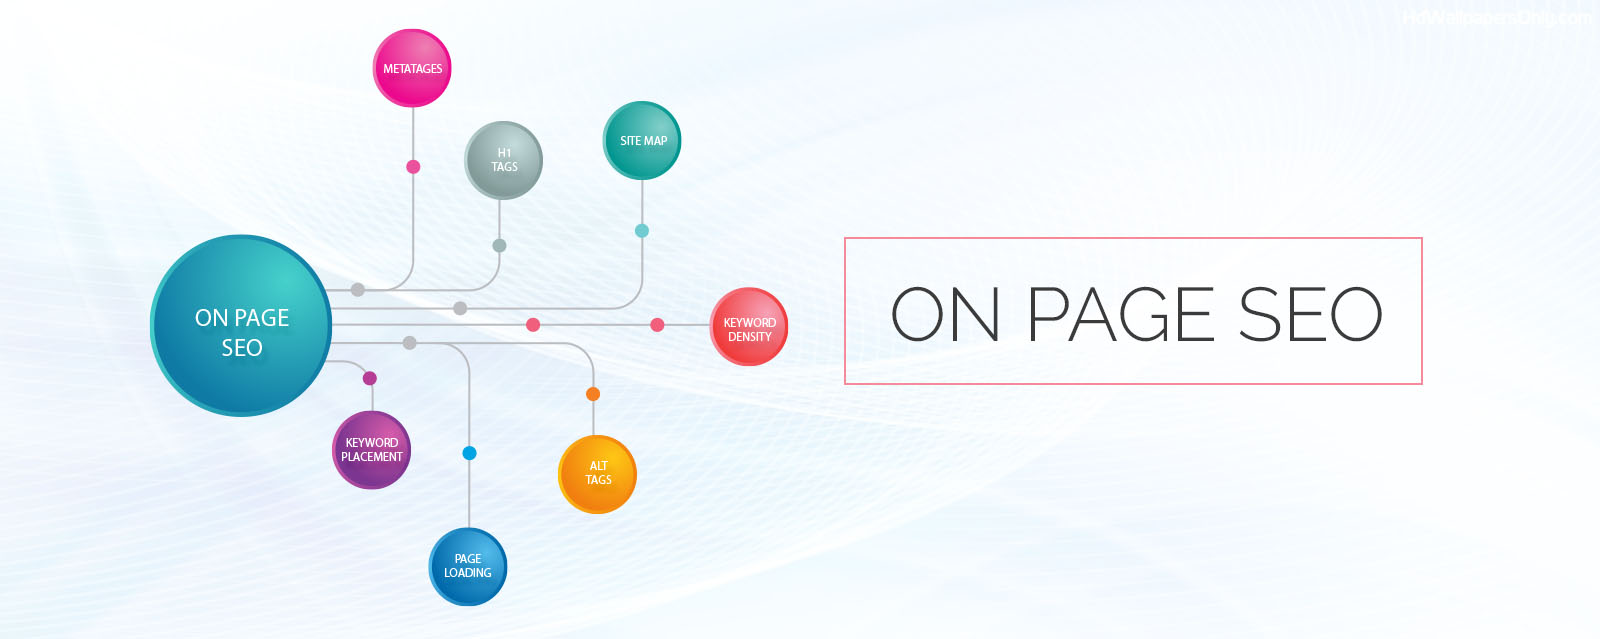 On-page SEO services illustration.